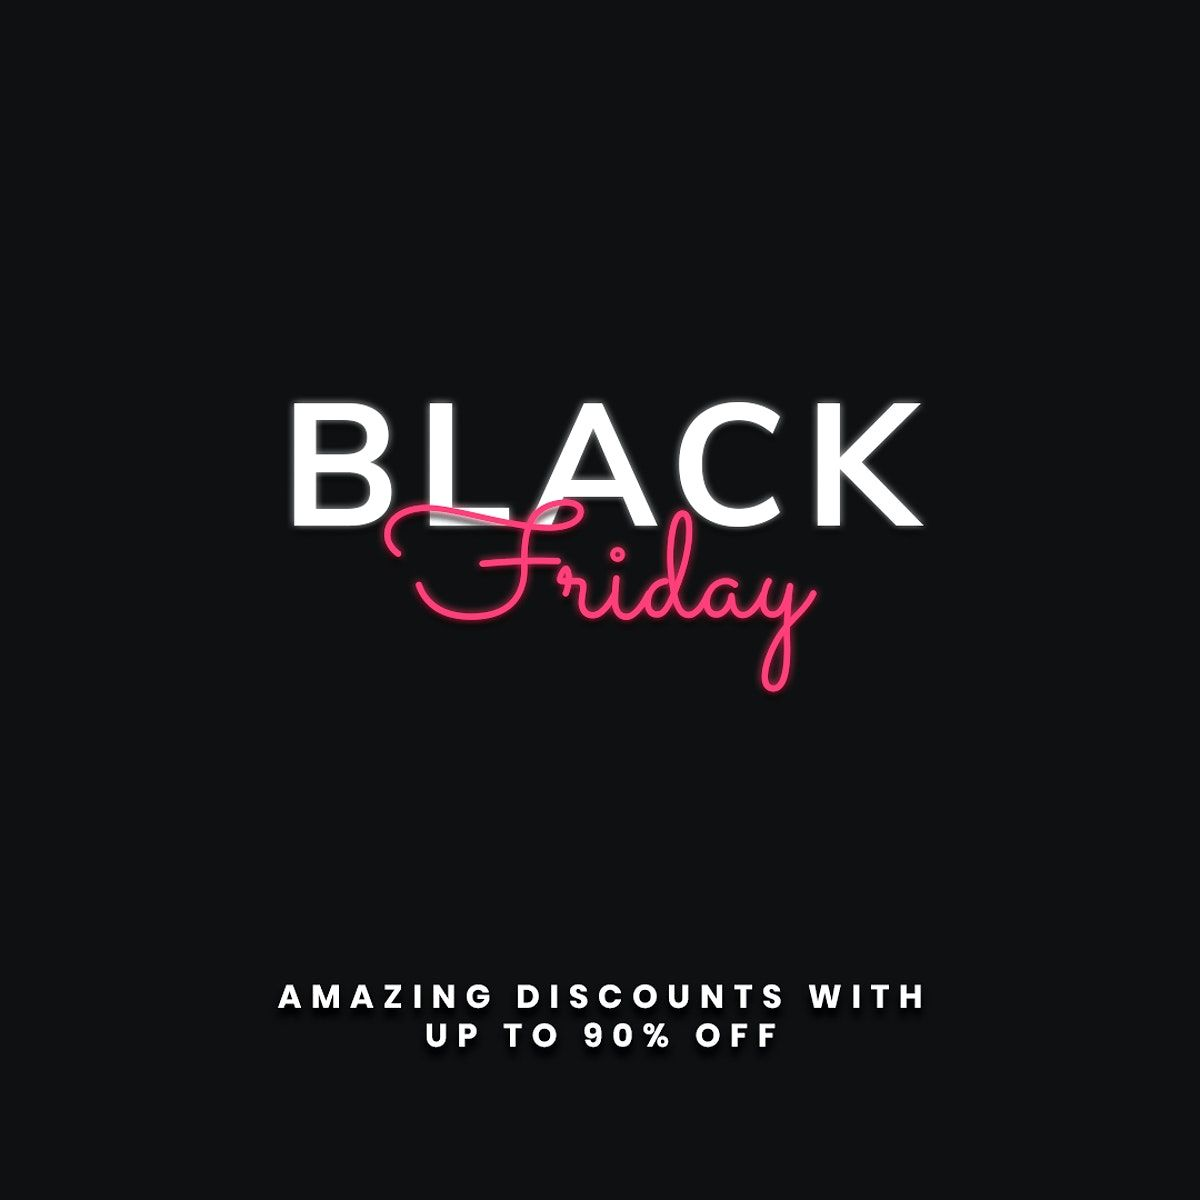 Glowing Black Friday Text Psd 90 Off Discount Ad Template Free Image By Rawpixel Com Sasi In 2020 Black Friday Black Friday Offers Black Friday Christmas